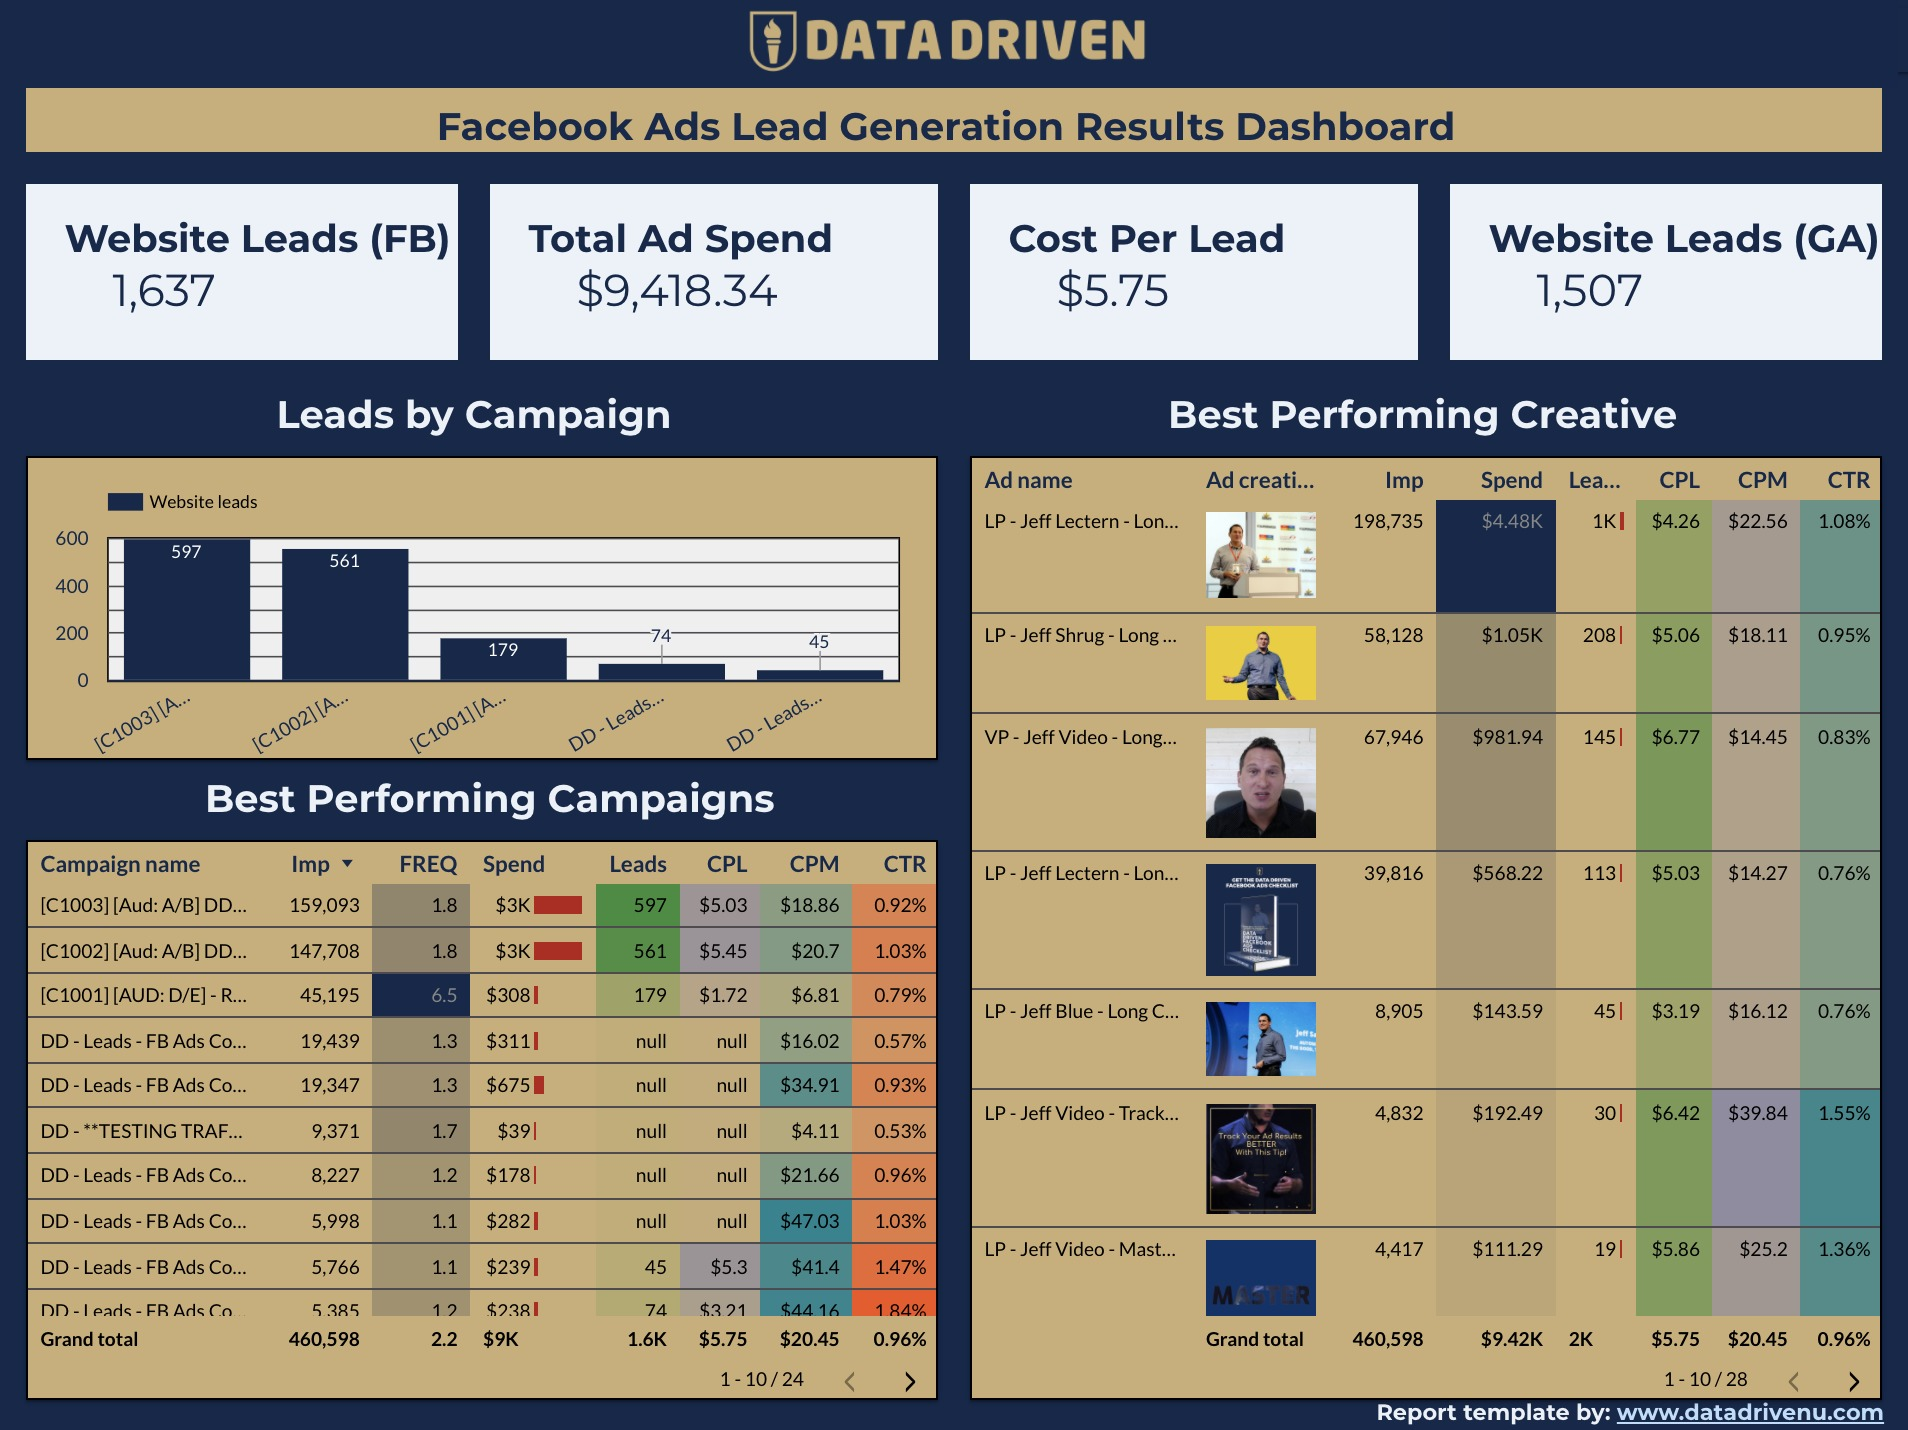 Facebook Ads Lead Generation Report for Google Data Studio